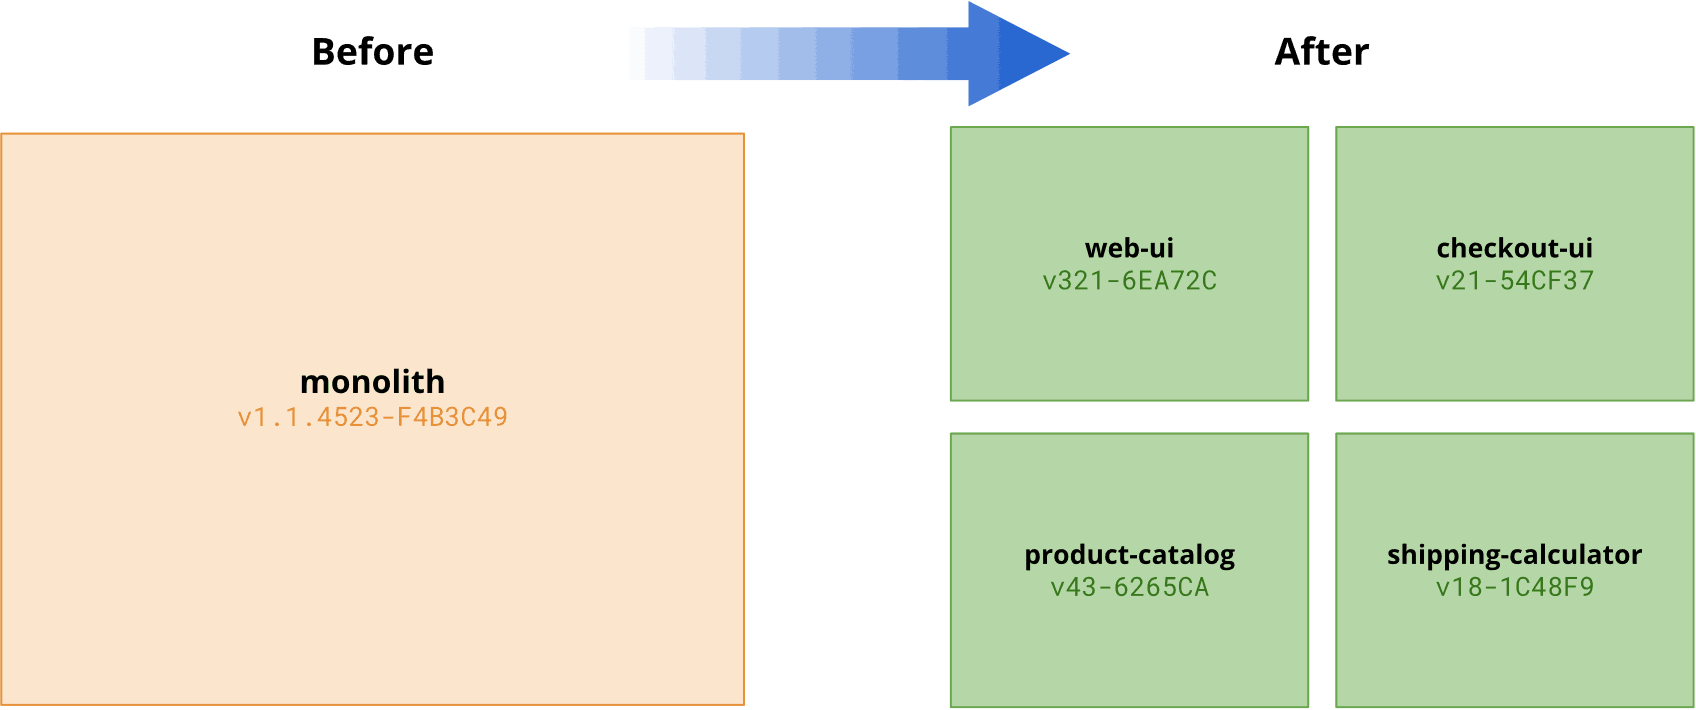 Diagram showing a monolith with a single version number versus multiple microservices with many version numbers